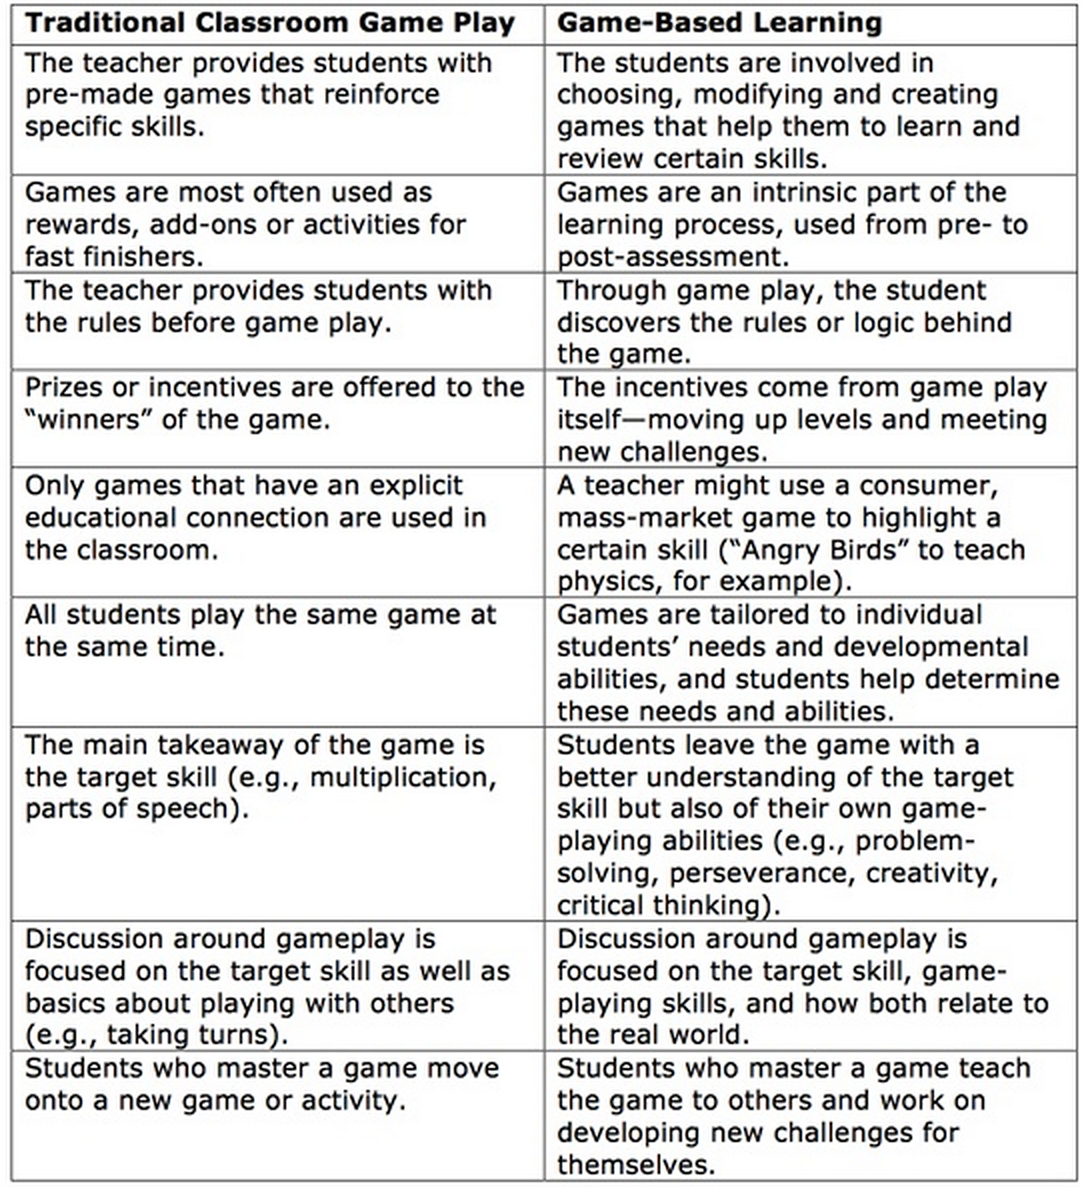 A Good Chart On Traditional Classroom Game Play Vs Game Based Learning